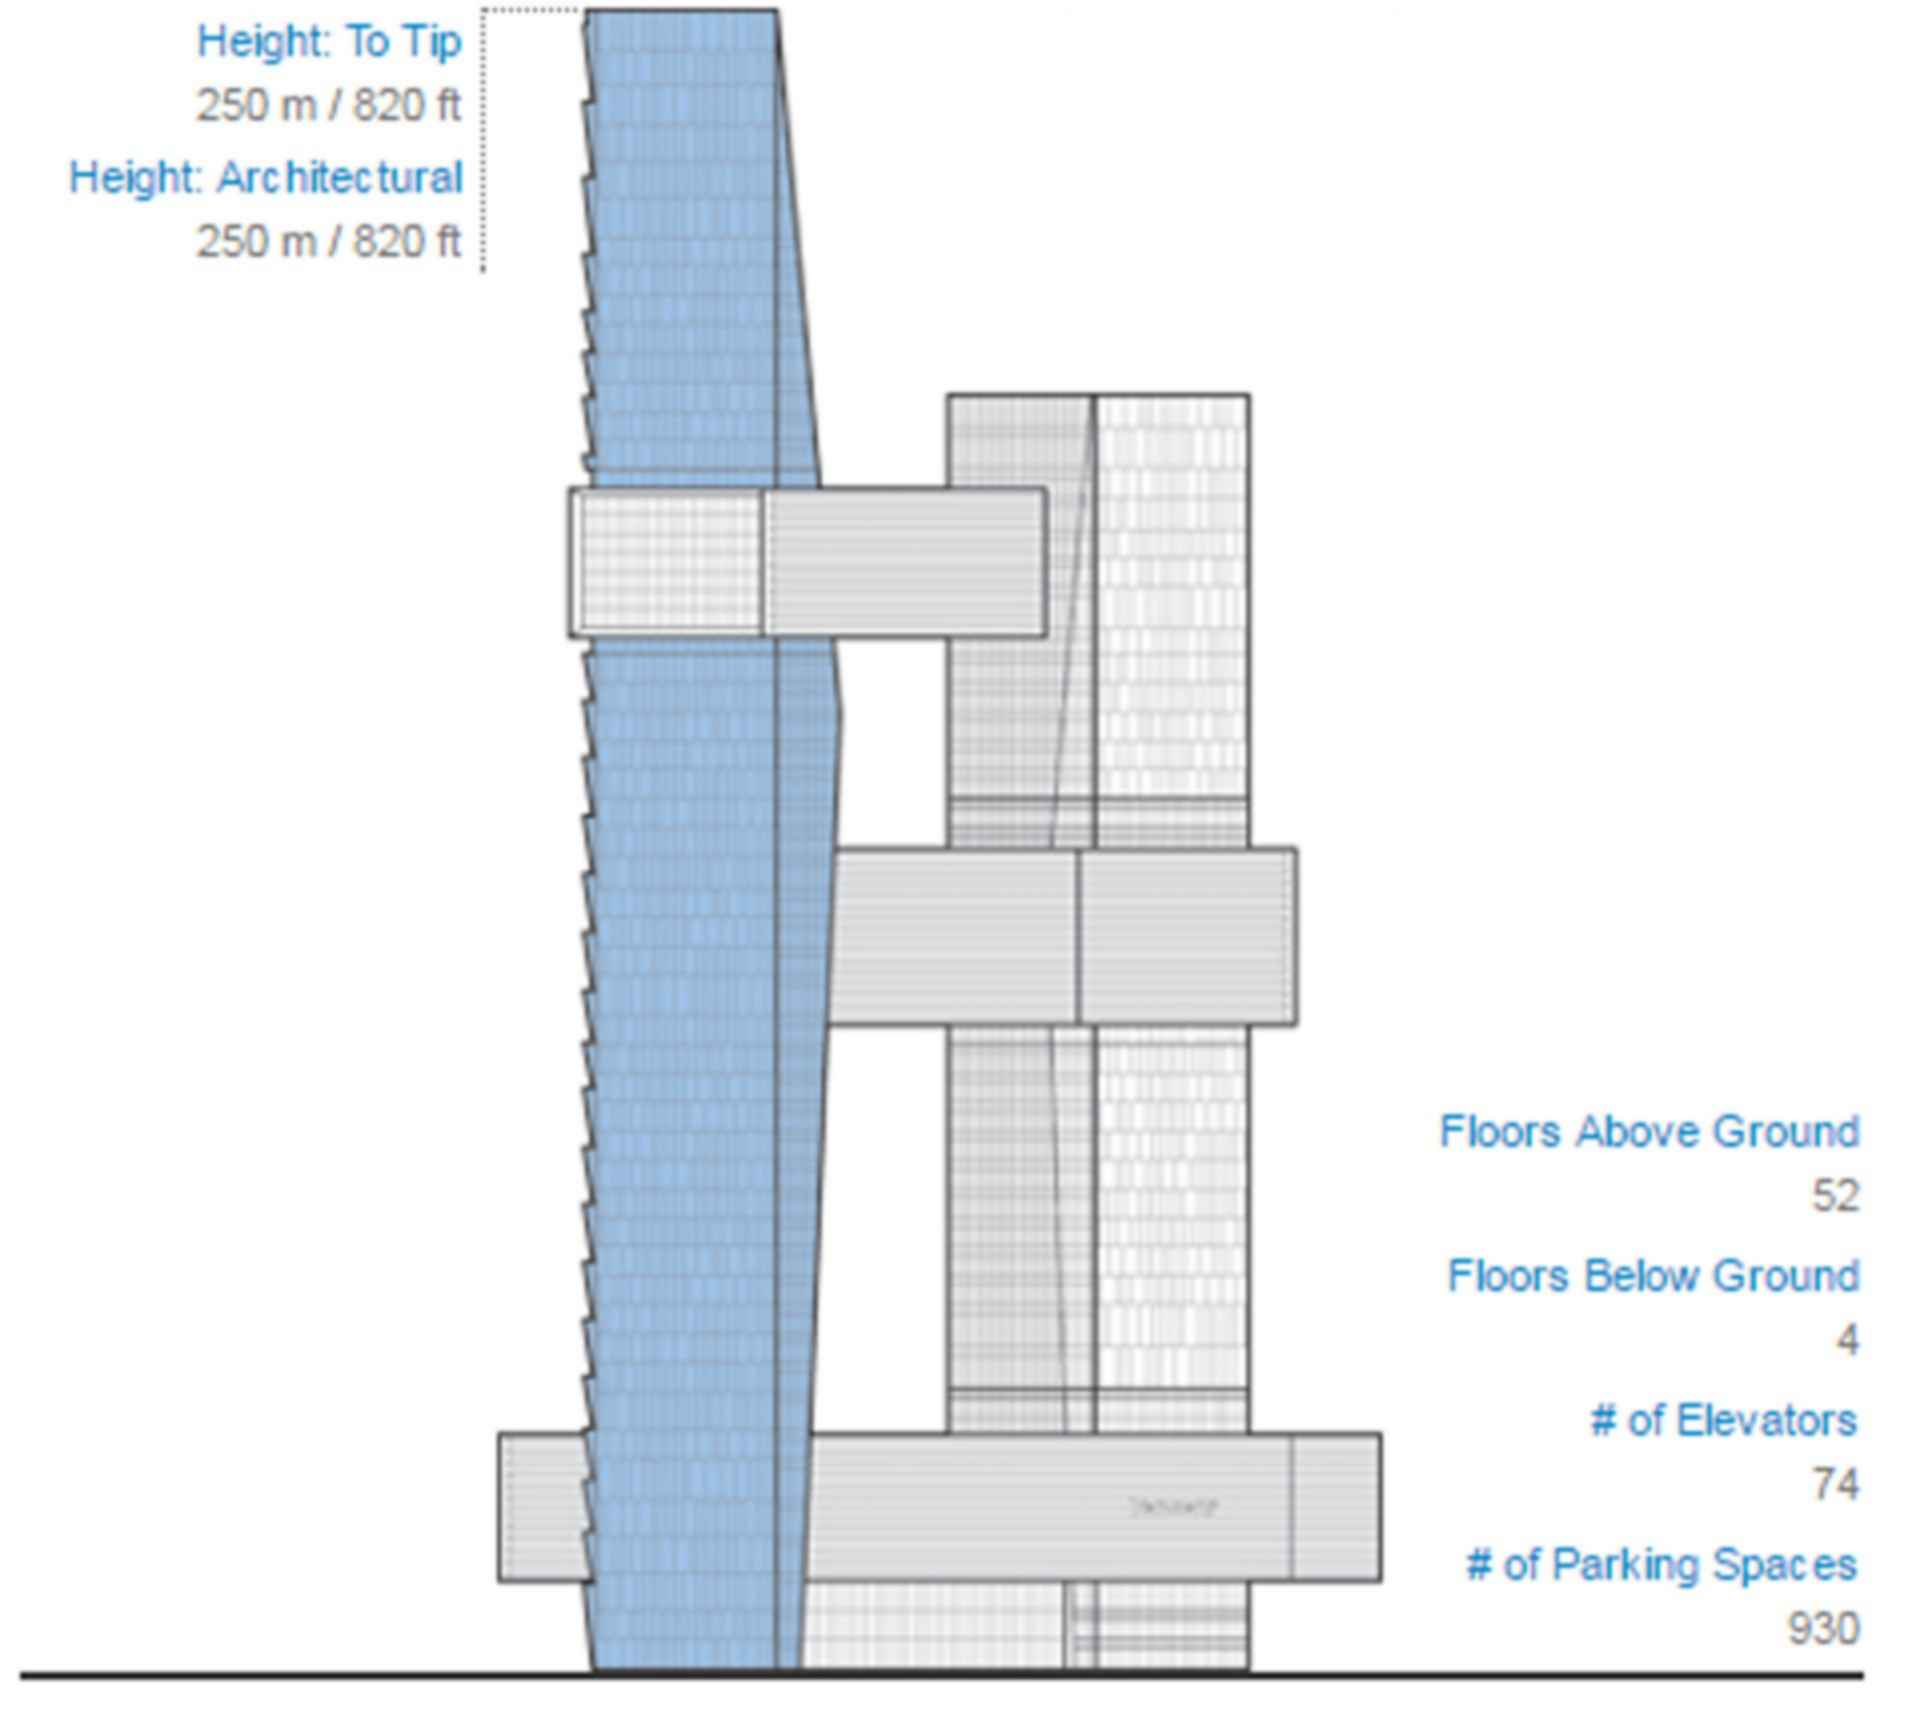 Tencent Seafront Towers - Concept Design